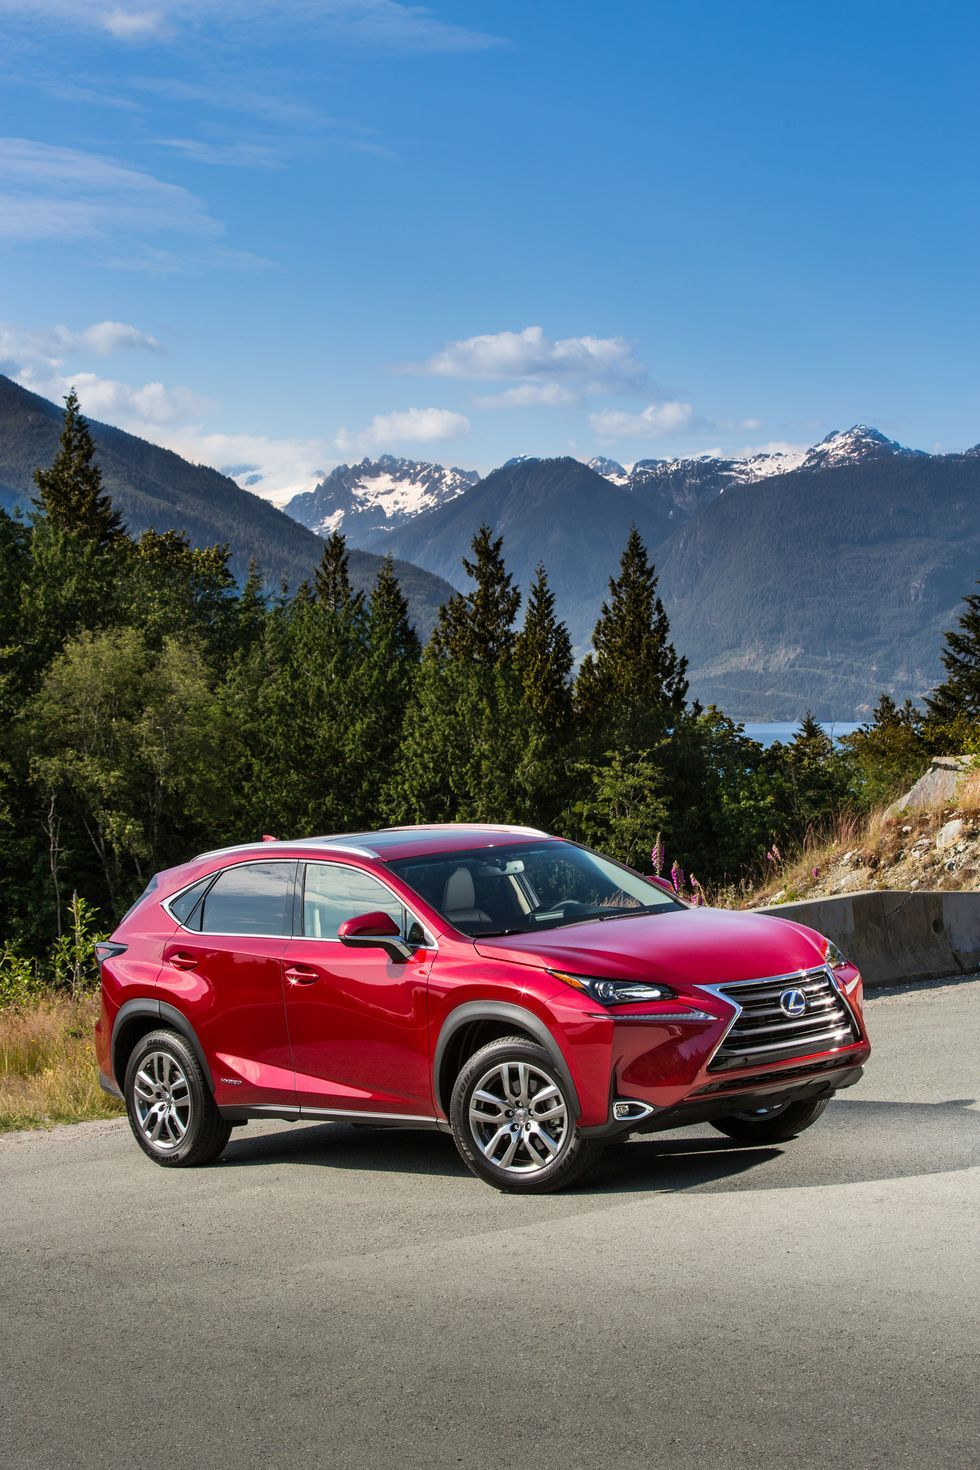 2021 Lexus NX Review, Pricing, and Specs Lexus